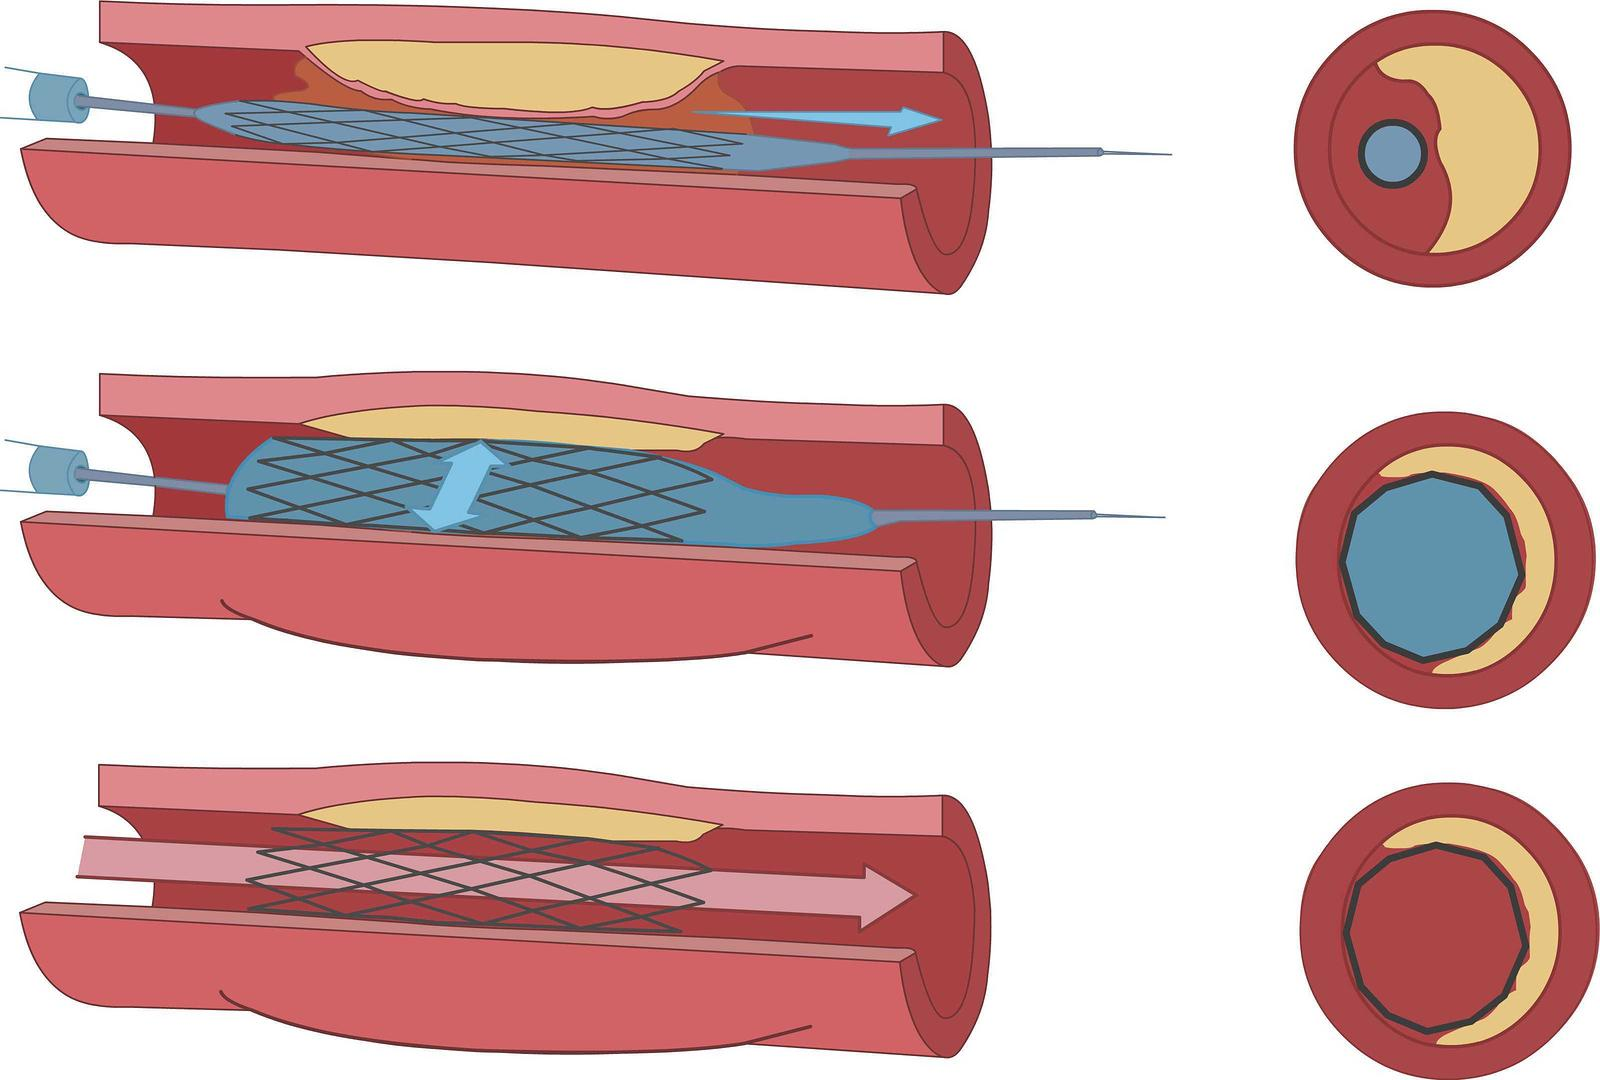 Endovascular Angioplasty and Stent Example Image - Mission Vascular